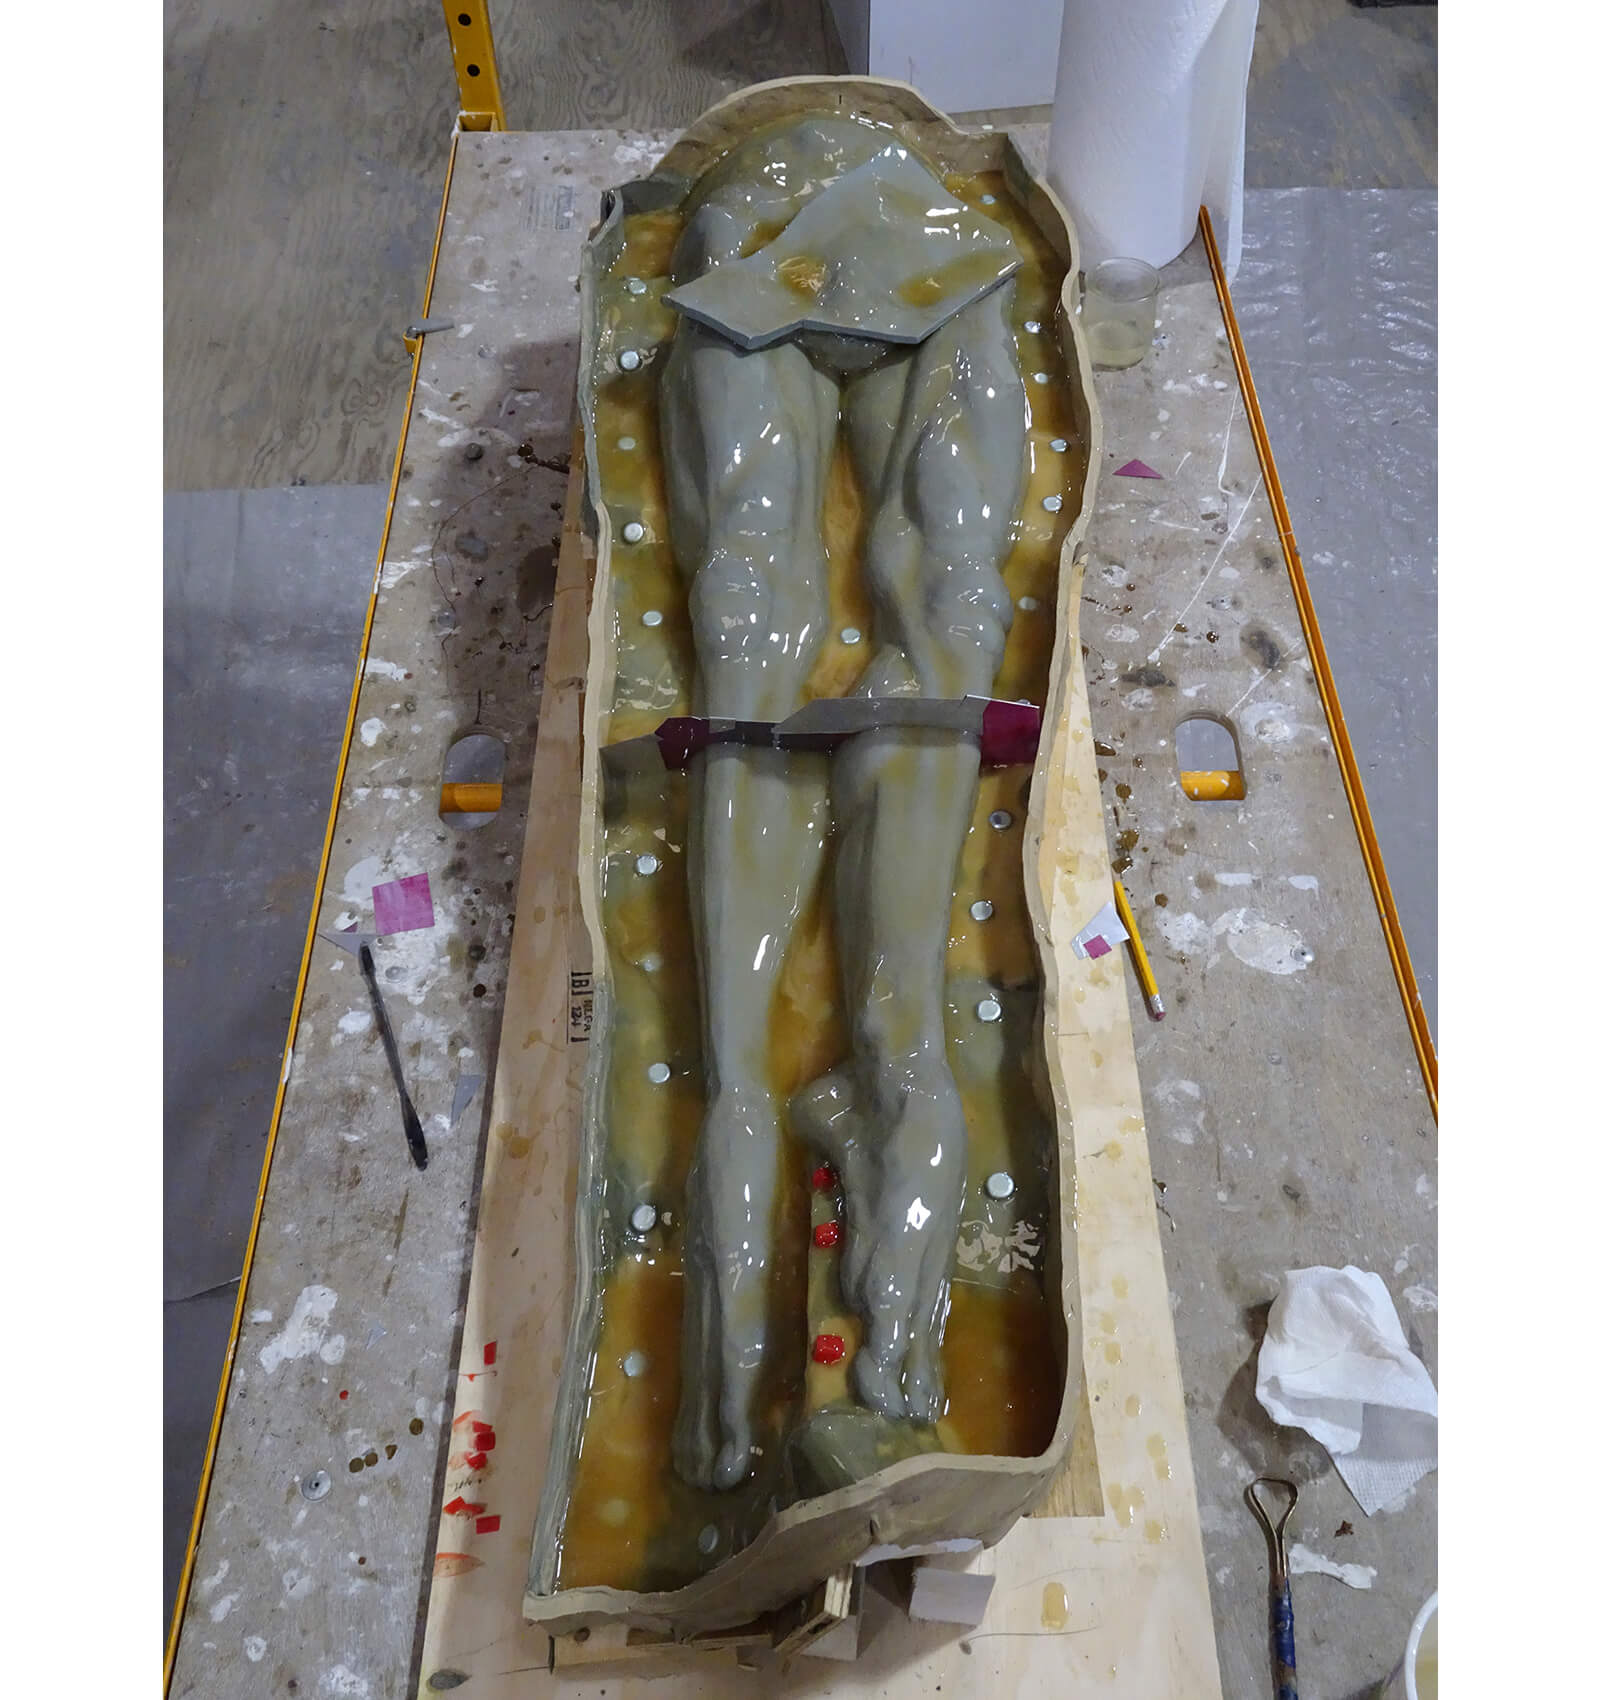 Lower torso of the enlarged Echoes sculpture in rubber mold